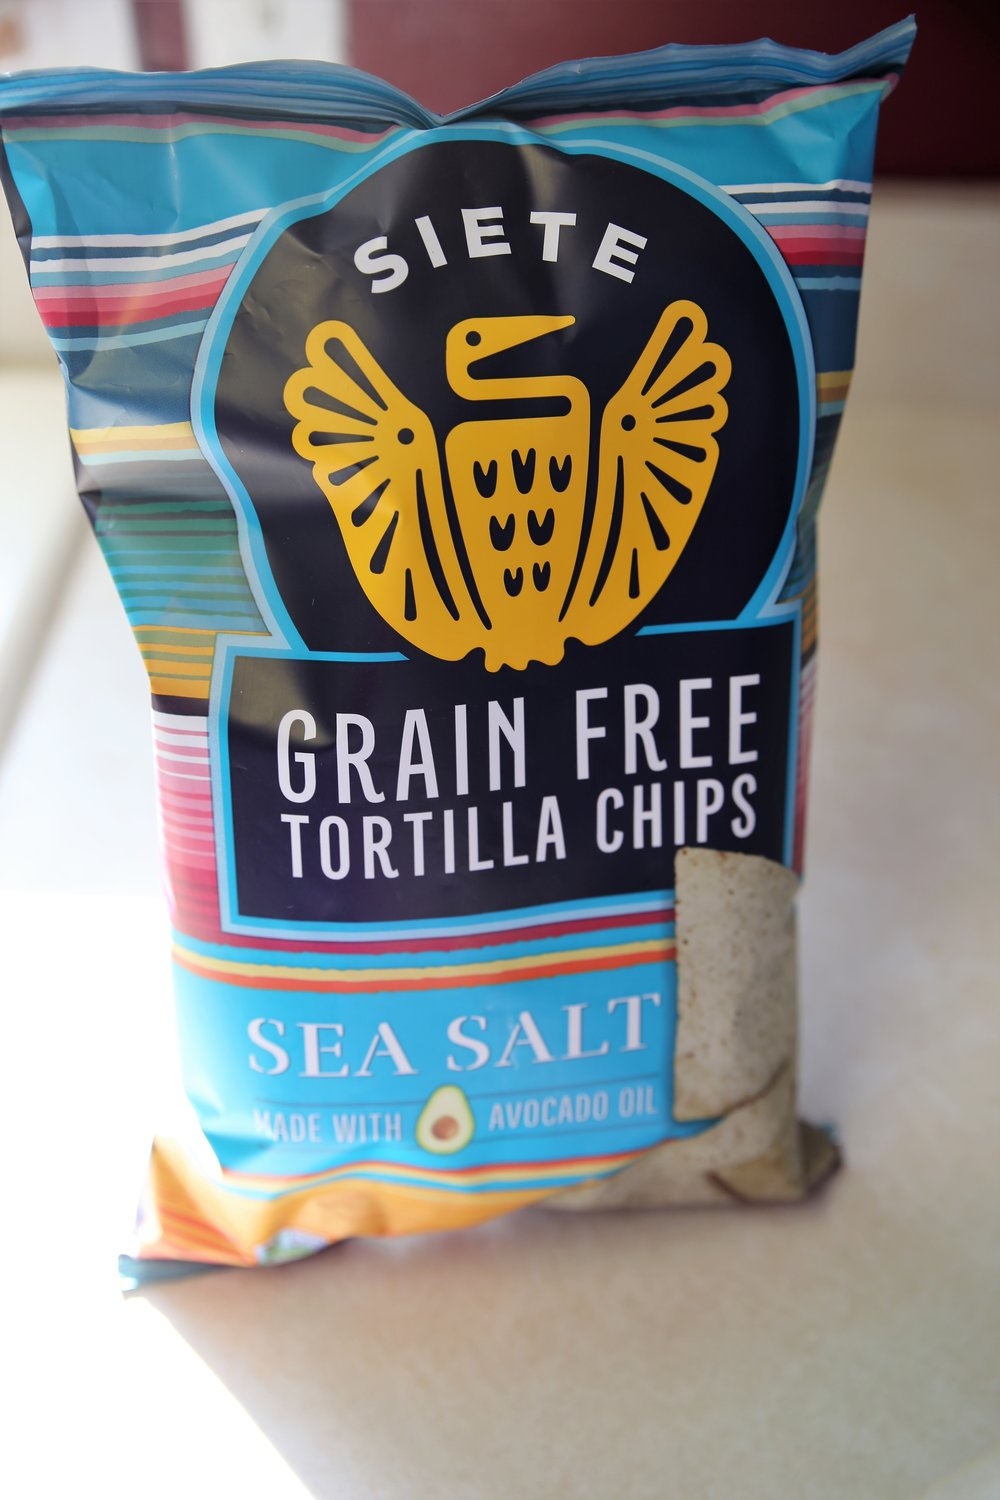 Tortilla Chips - I wouldn't call these chips a